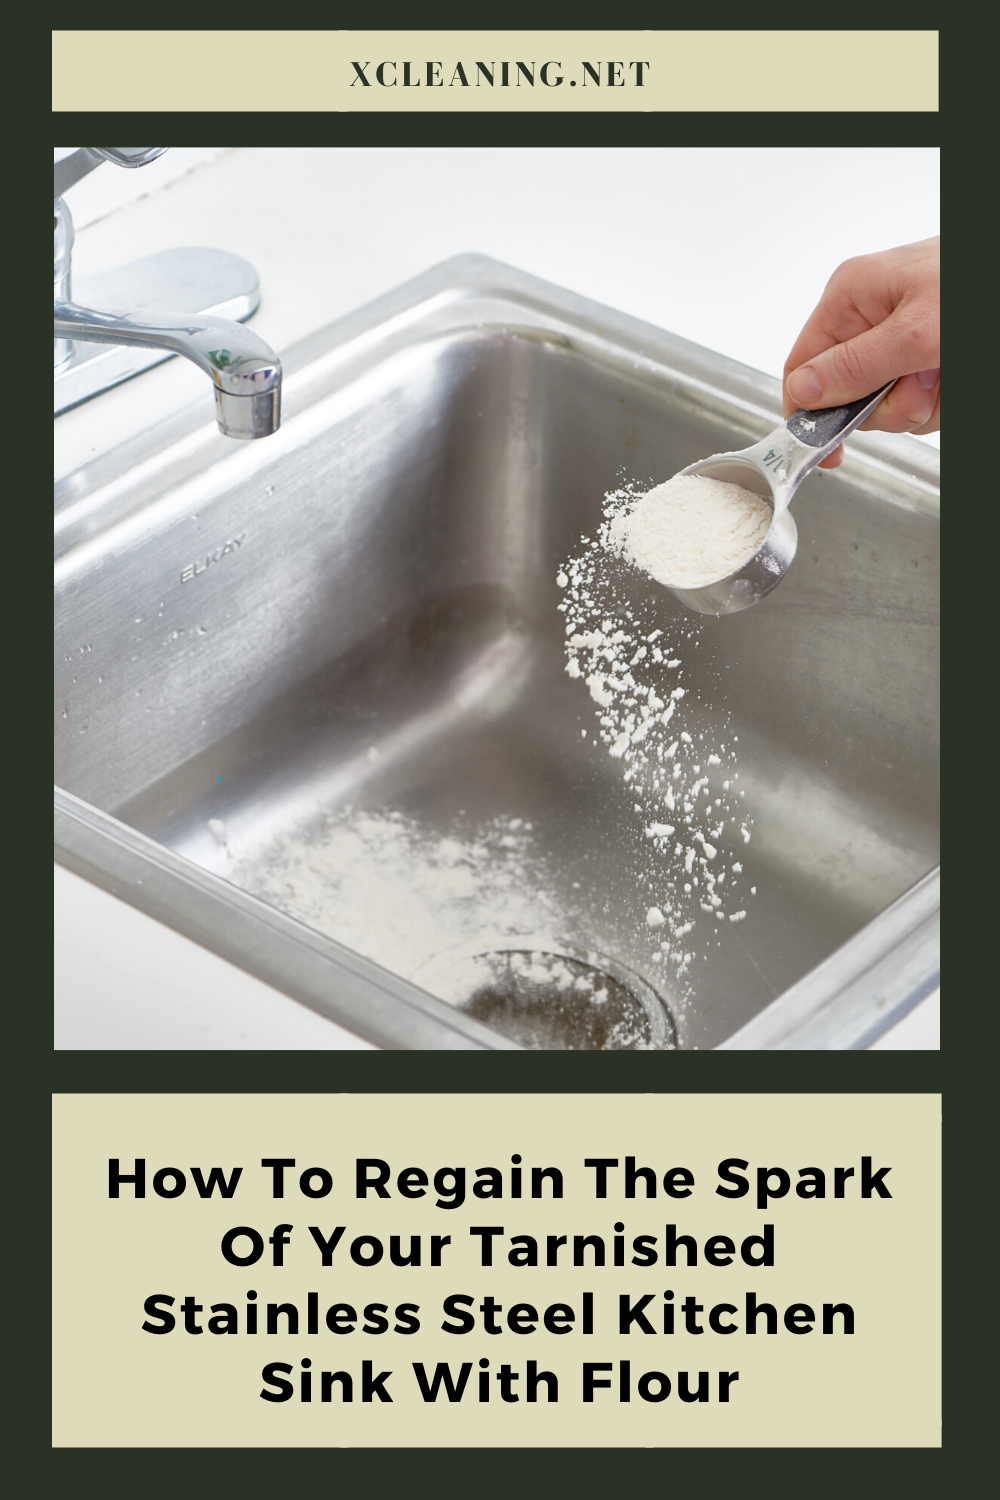 How To Regain The Spark Of Your Tarnished Stainless Steel